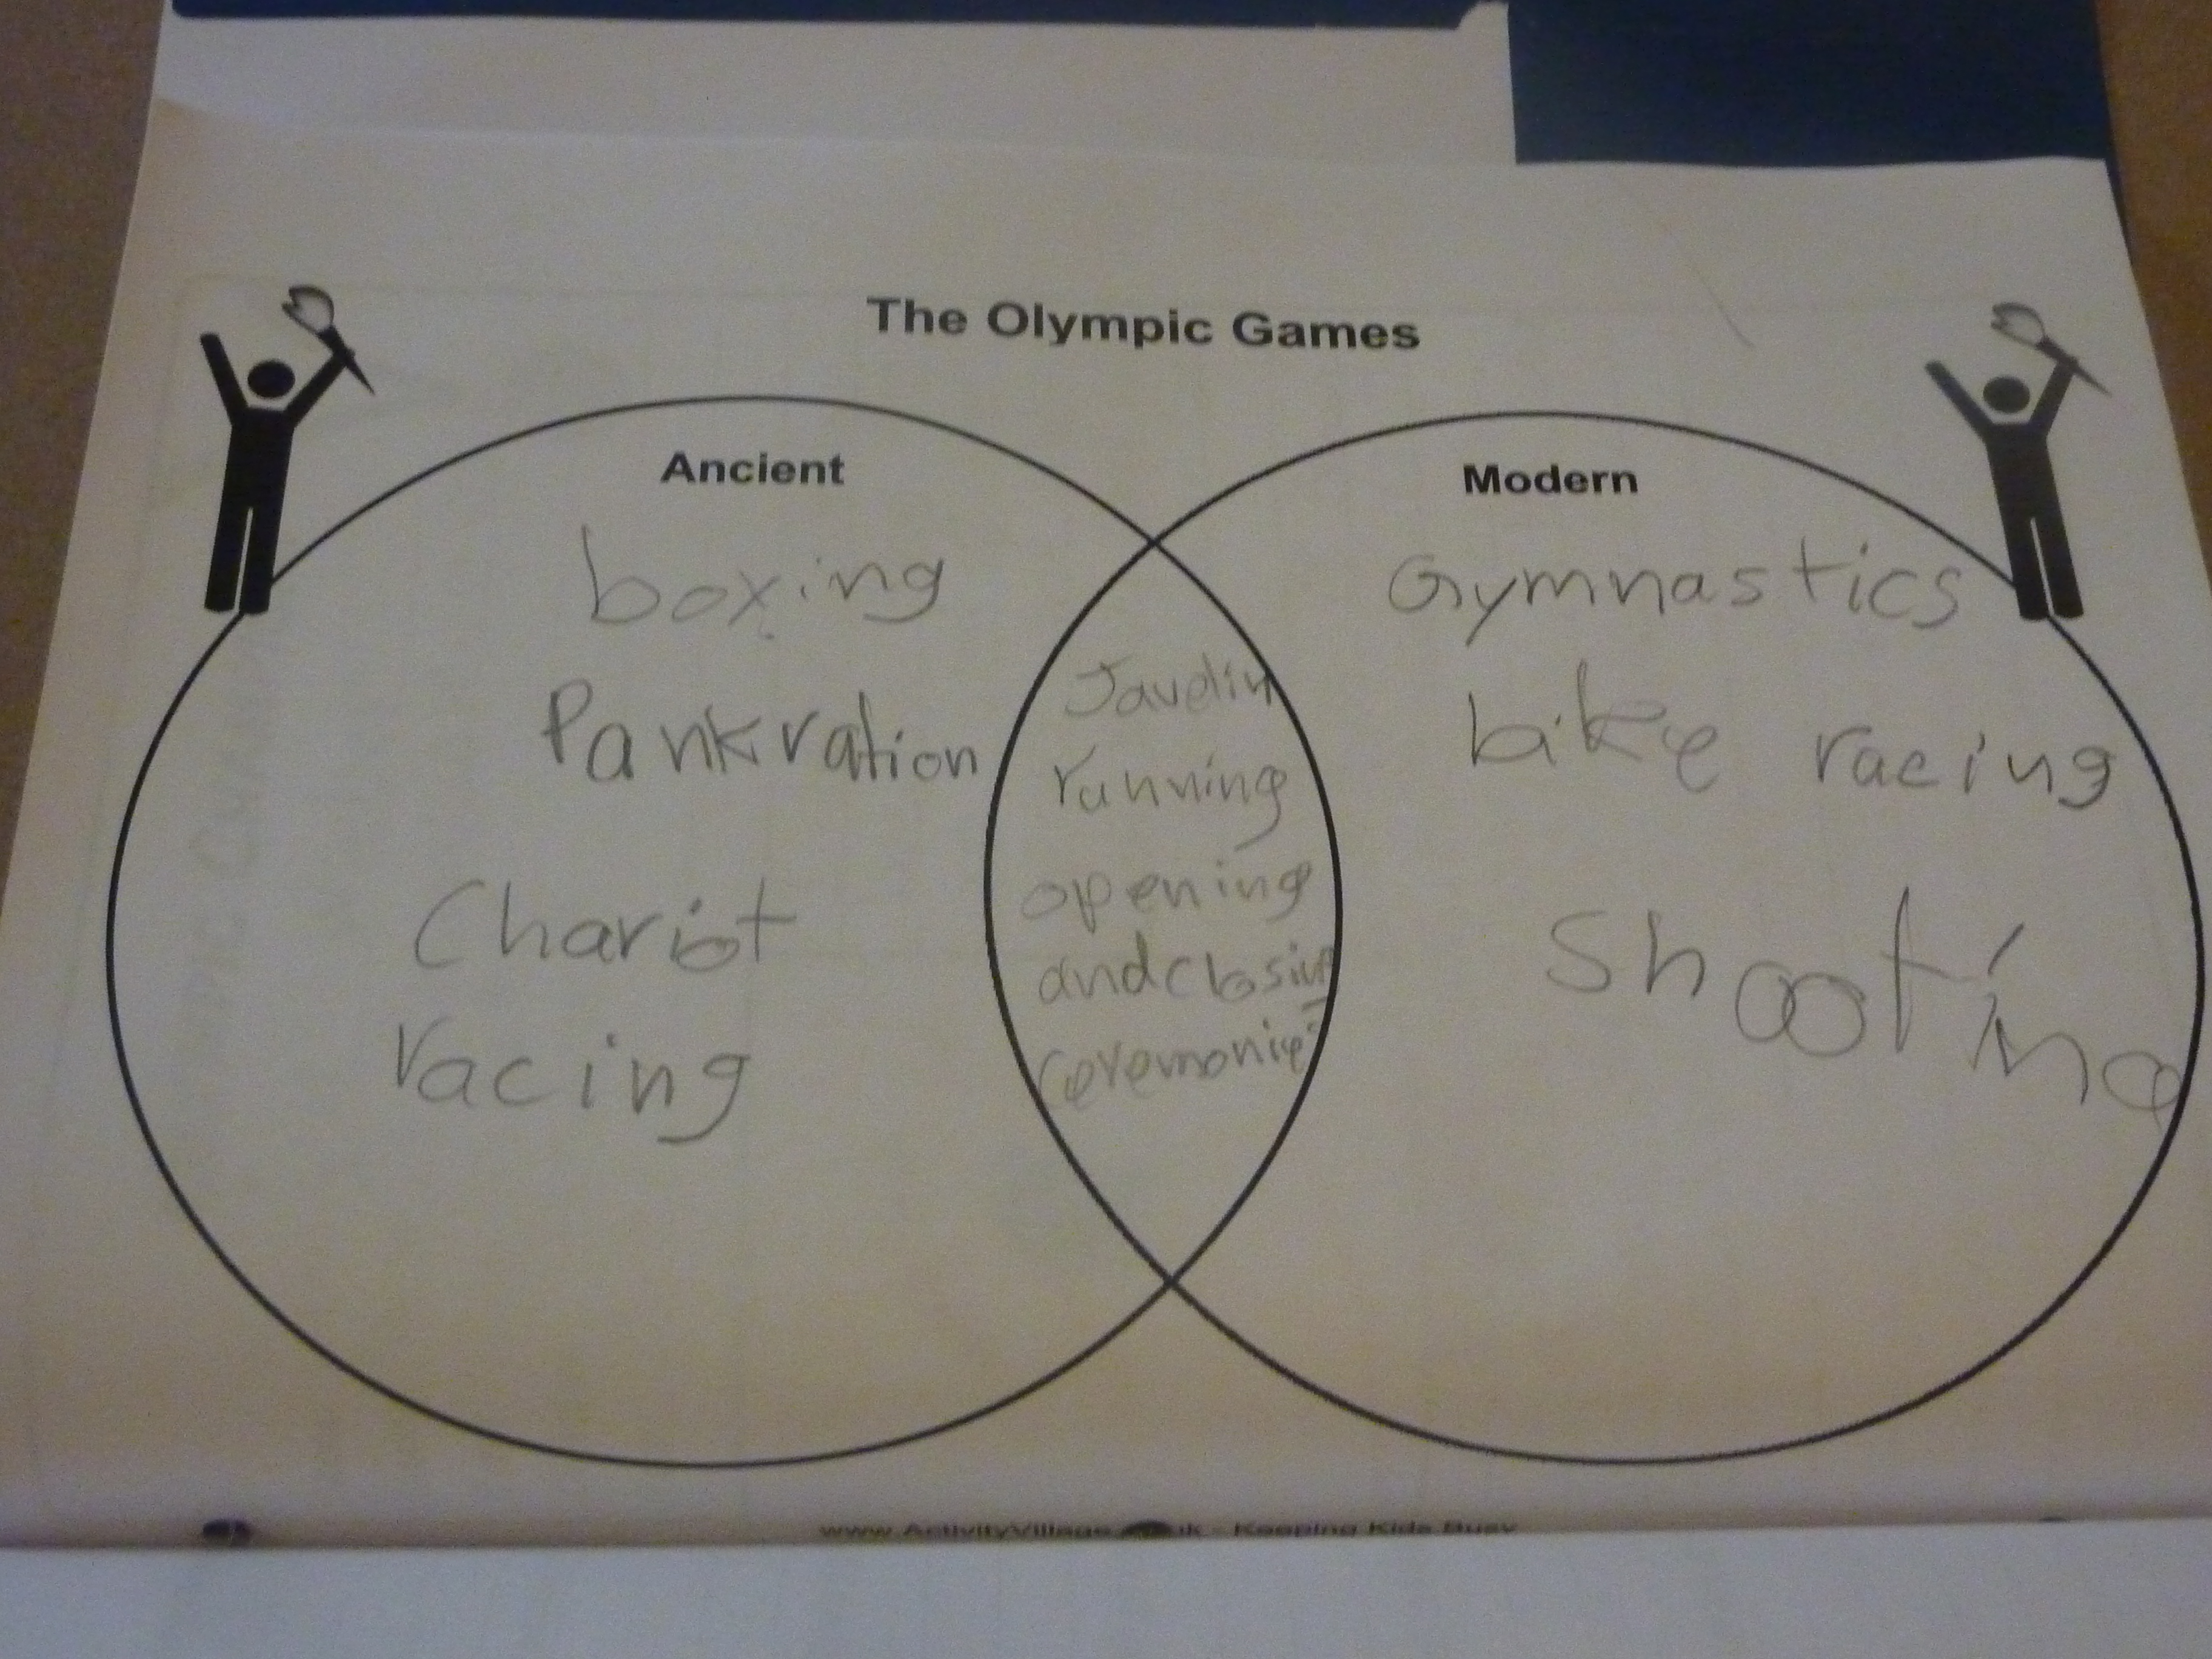 similarities between ancient and modern olympics